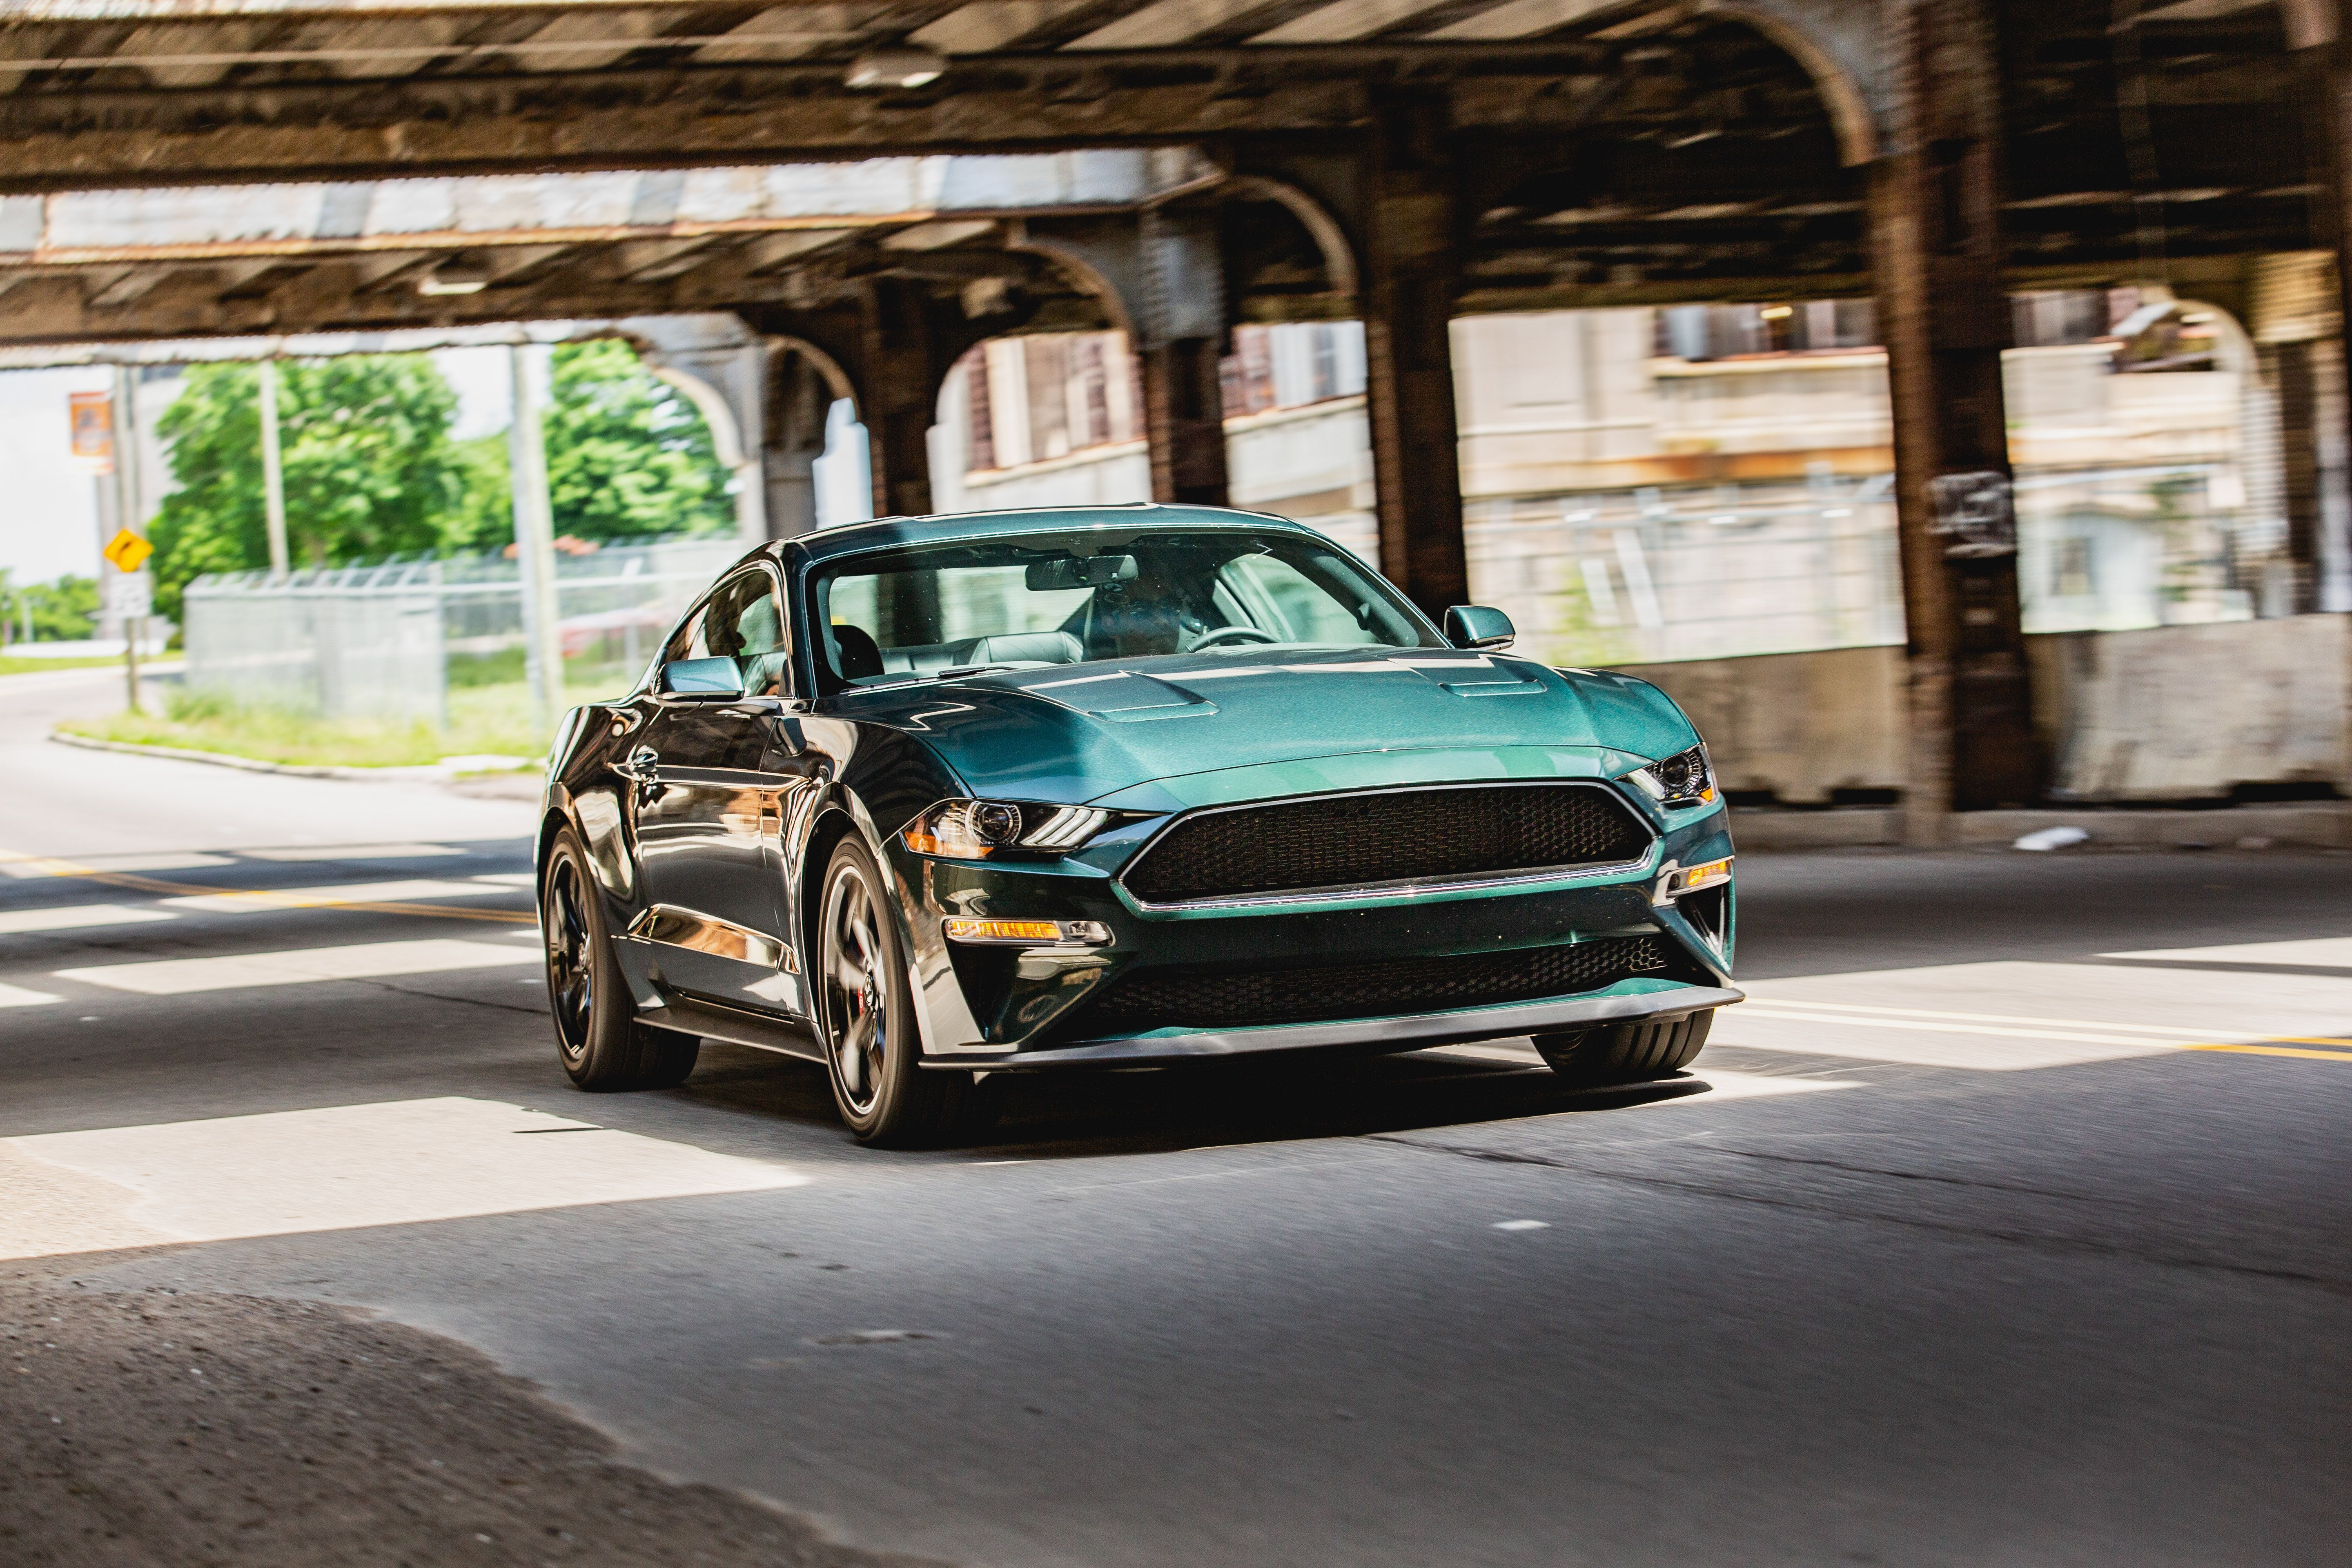 How Reliable Is the 2019 Ford Mustang Bullitt?